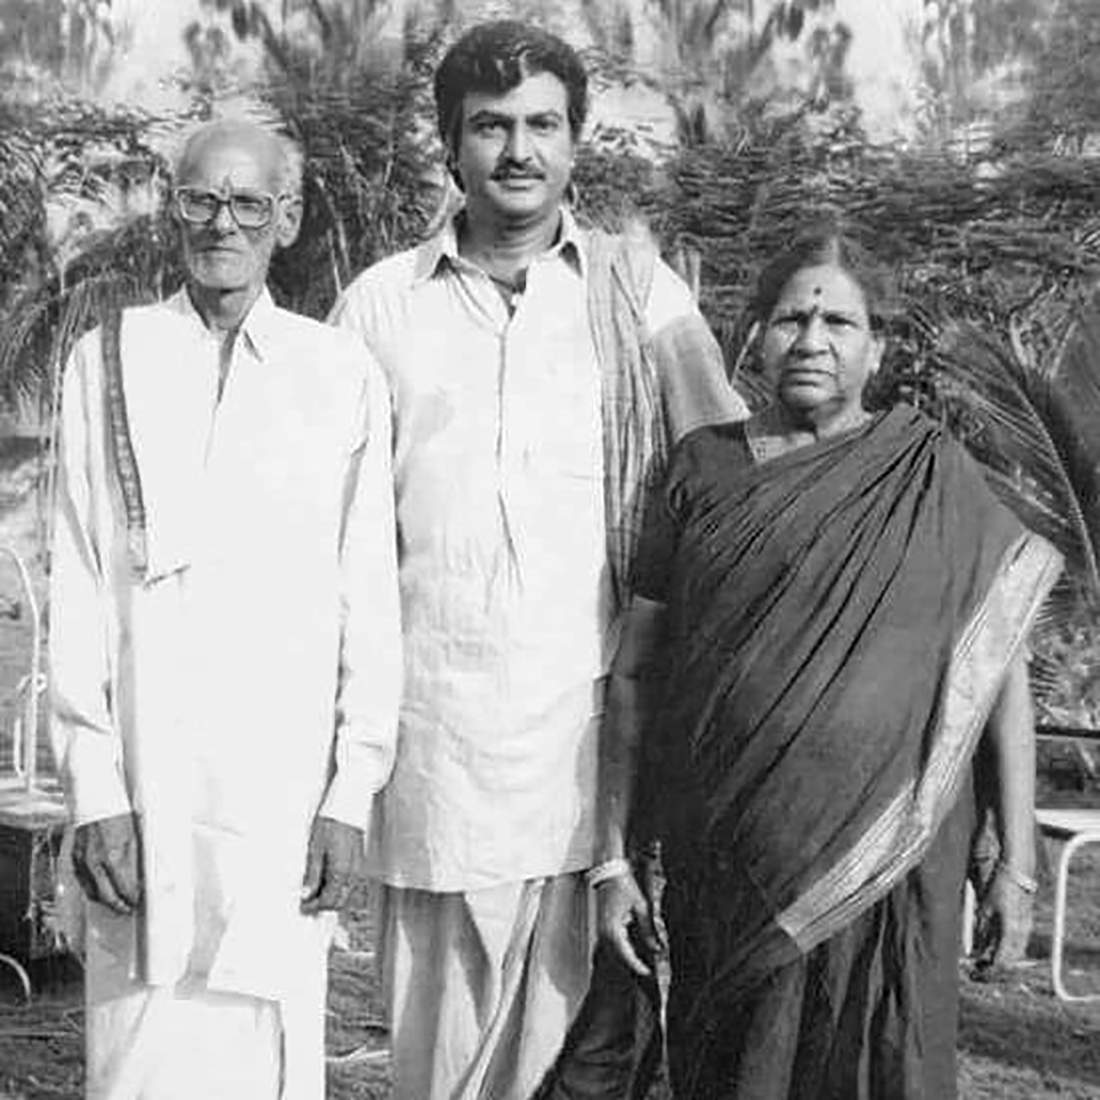 #GoldenFrames: Mohan Babu - Pictorial biography of Telugu Cinema's 'Collection King'